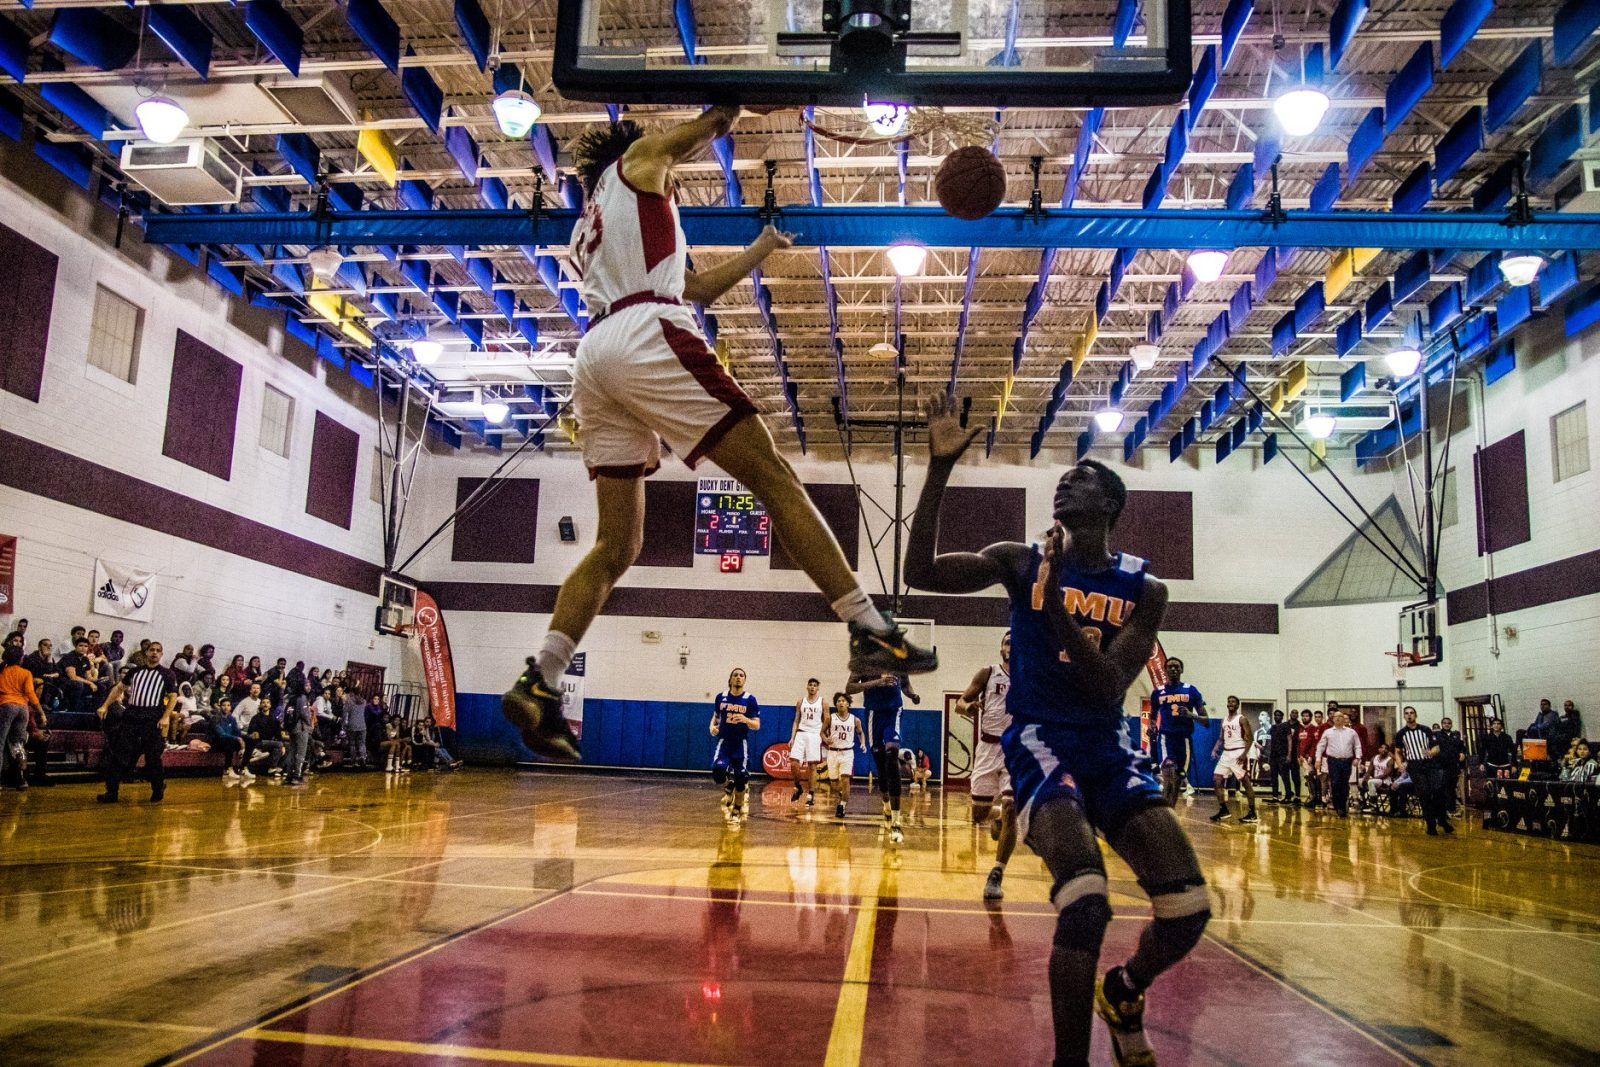 FNU Basketball player Jeffrey Dunking in the game